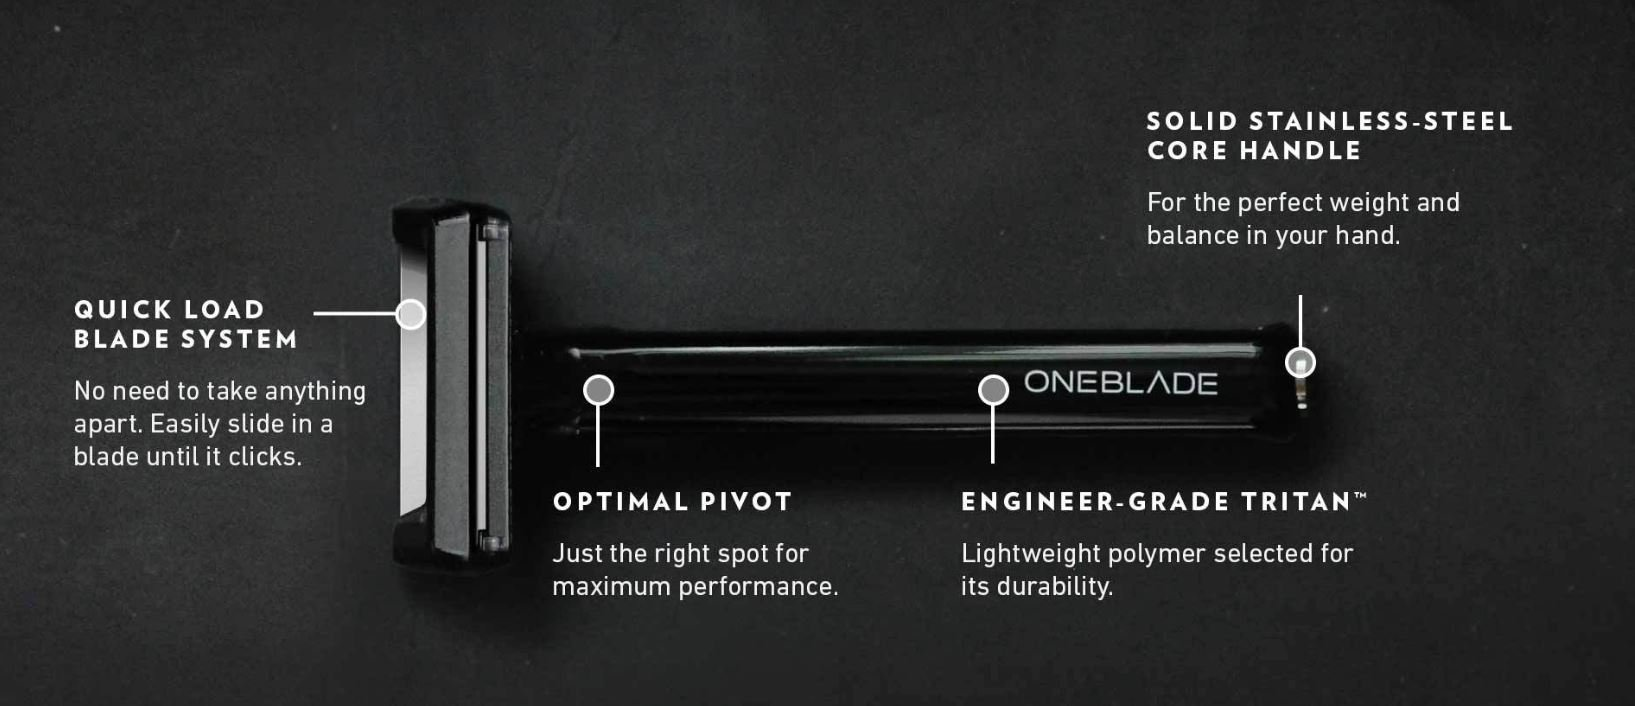 ONEBLADE CORE BLACK TIE SHAVE KIT, CORE Razor, Stand, Shave brush, Shaving cream, After shave balm